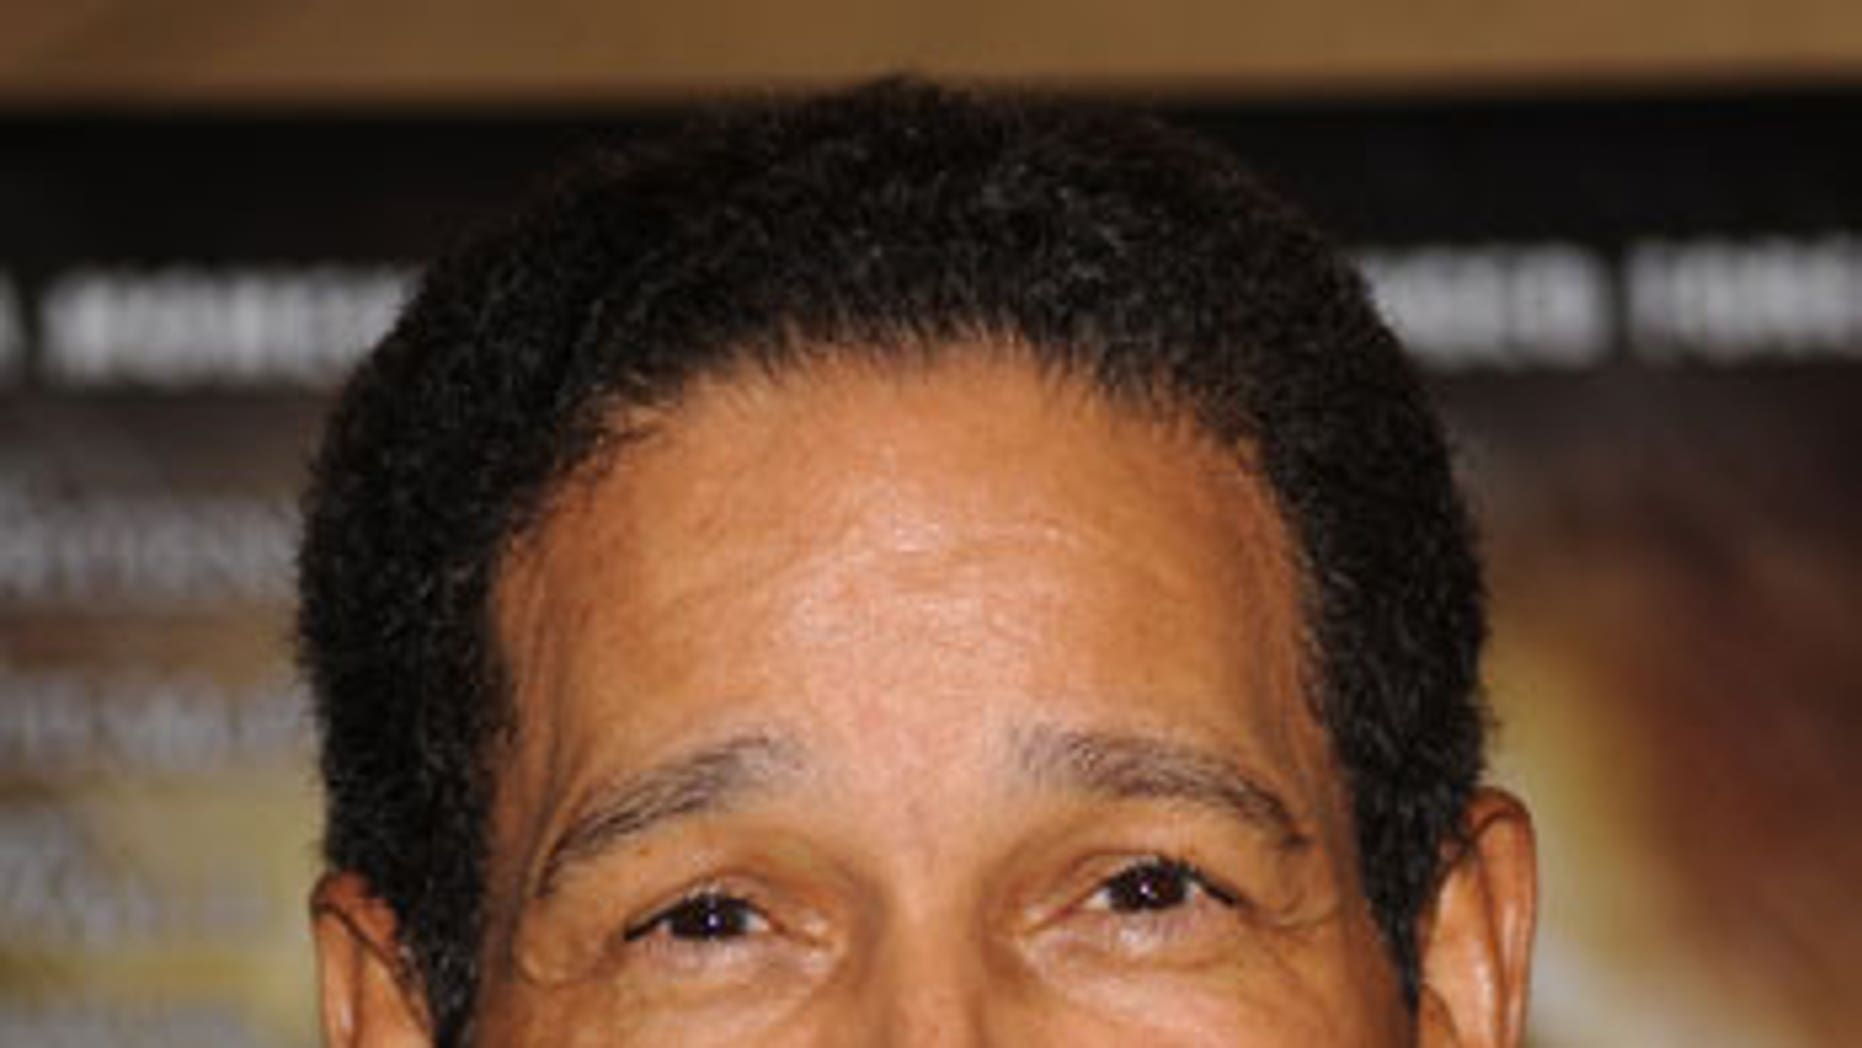 Bryant Gumbel says he's recovering from lung cancer surgery and treatment.